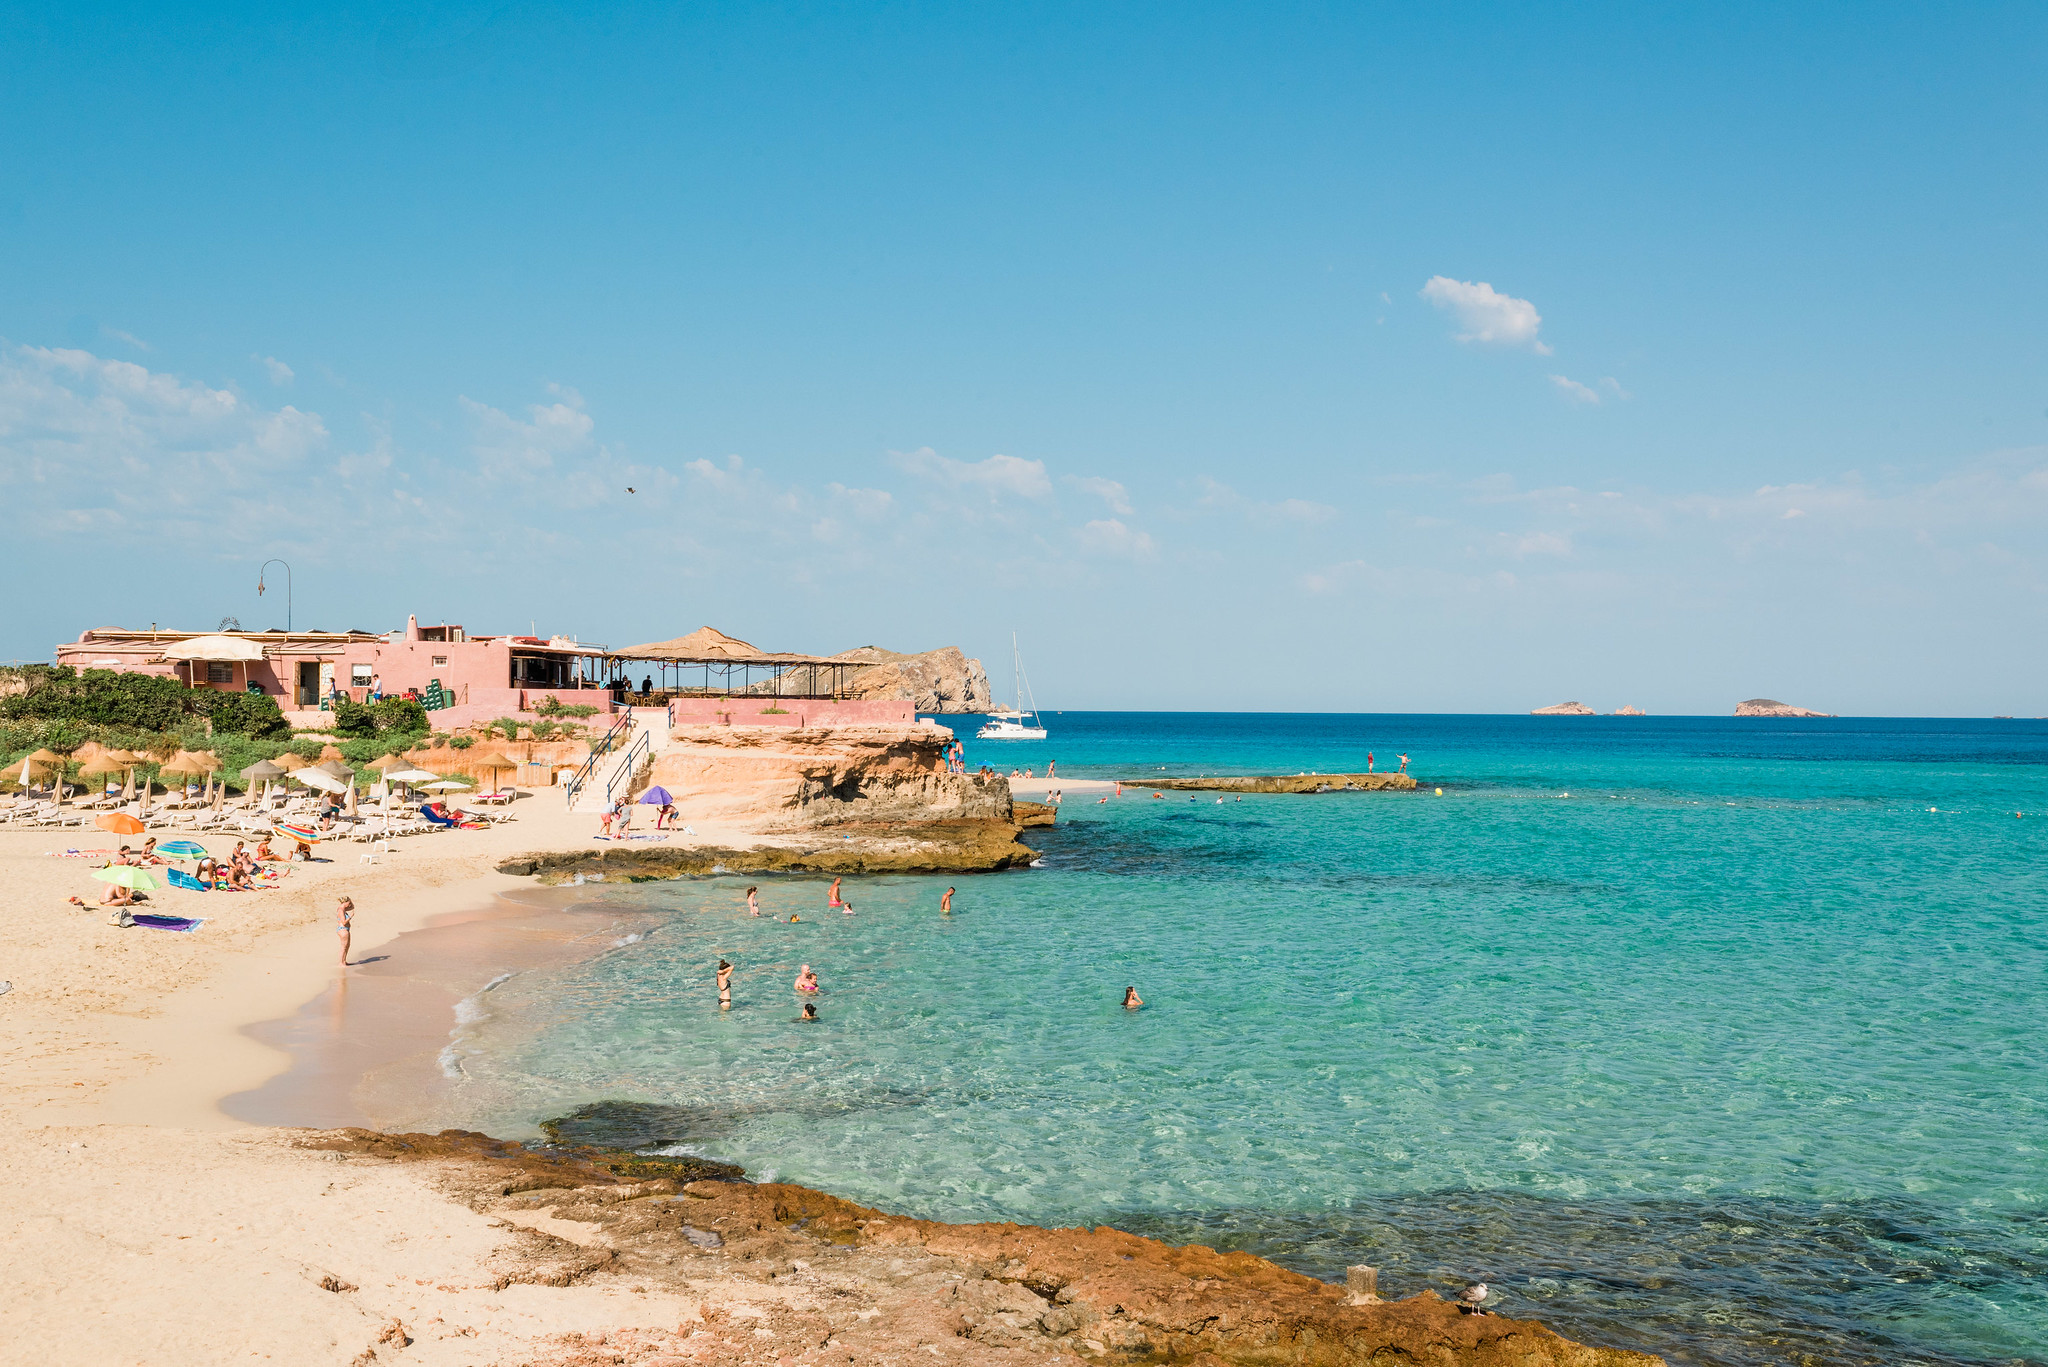 Postcards from Ibiza: Cala Conta